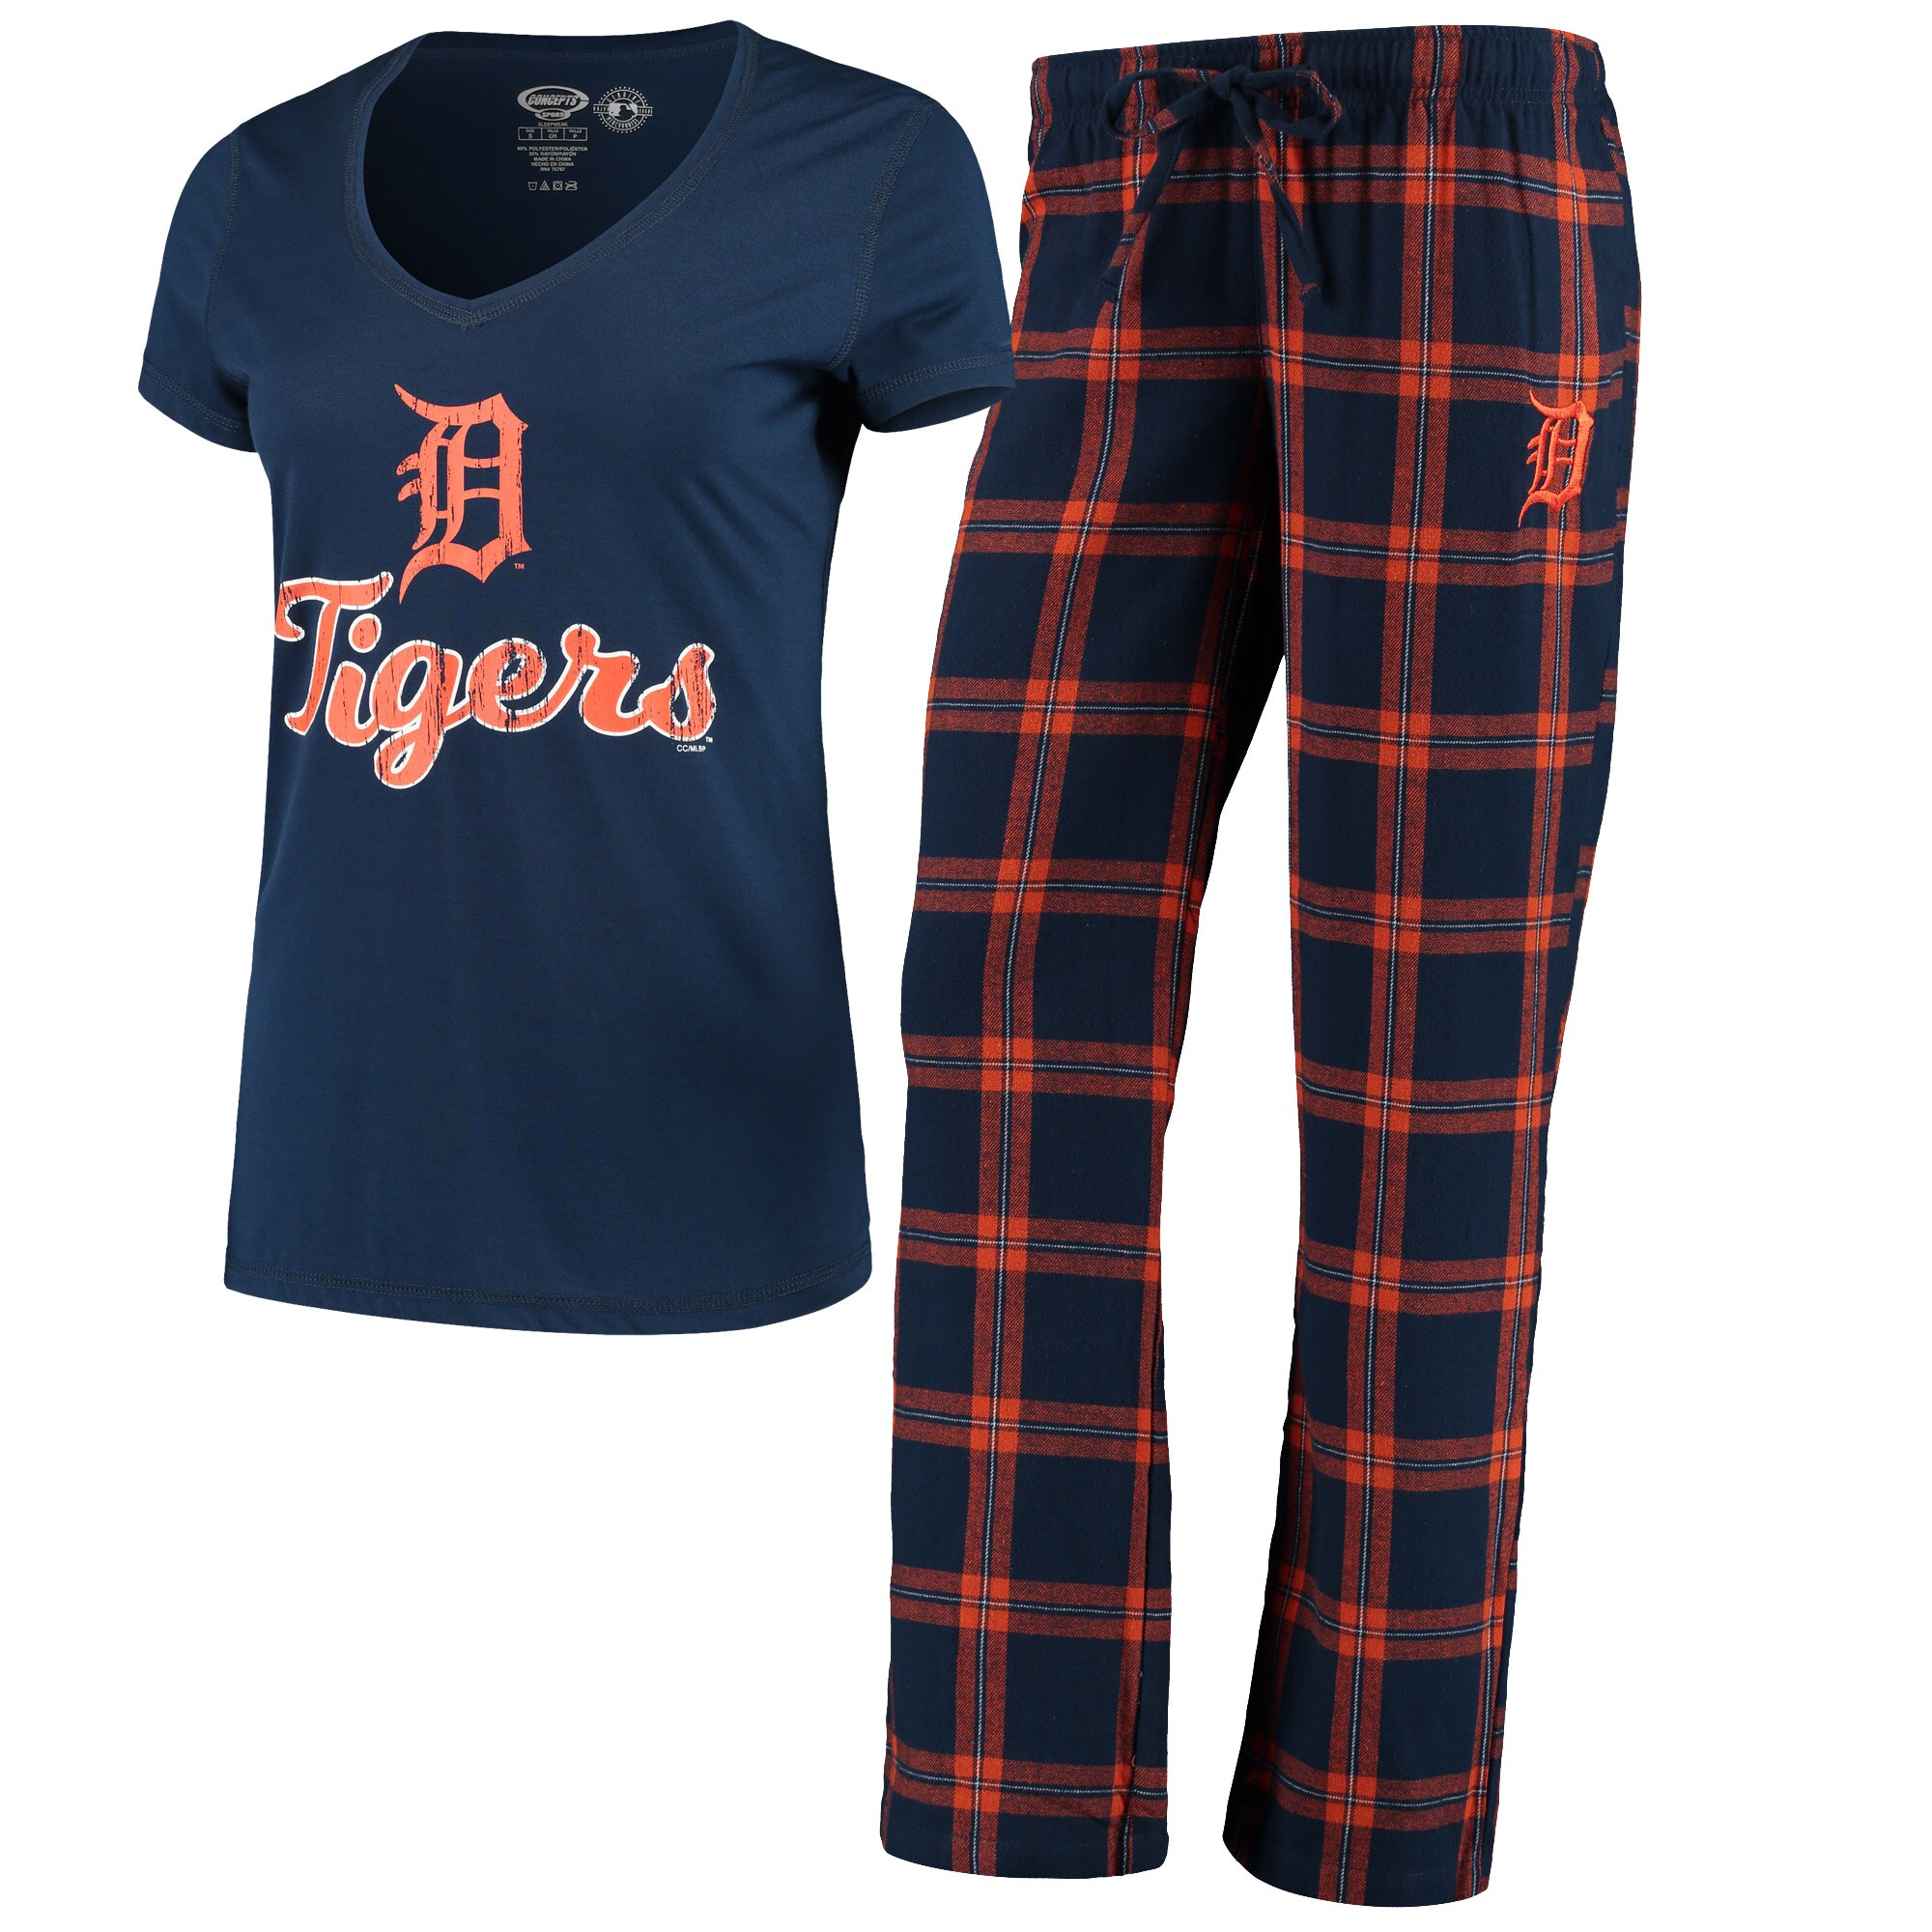 Detroit Tigers Concepts Sport Women's Troupe V-Neck T-Shirt & Pants Sleep Set - Navy/Orange